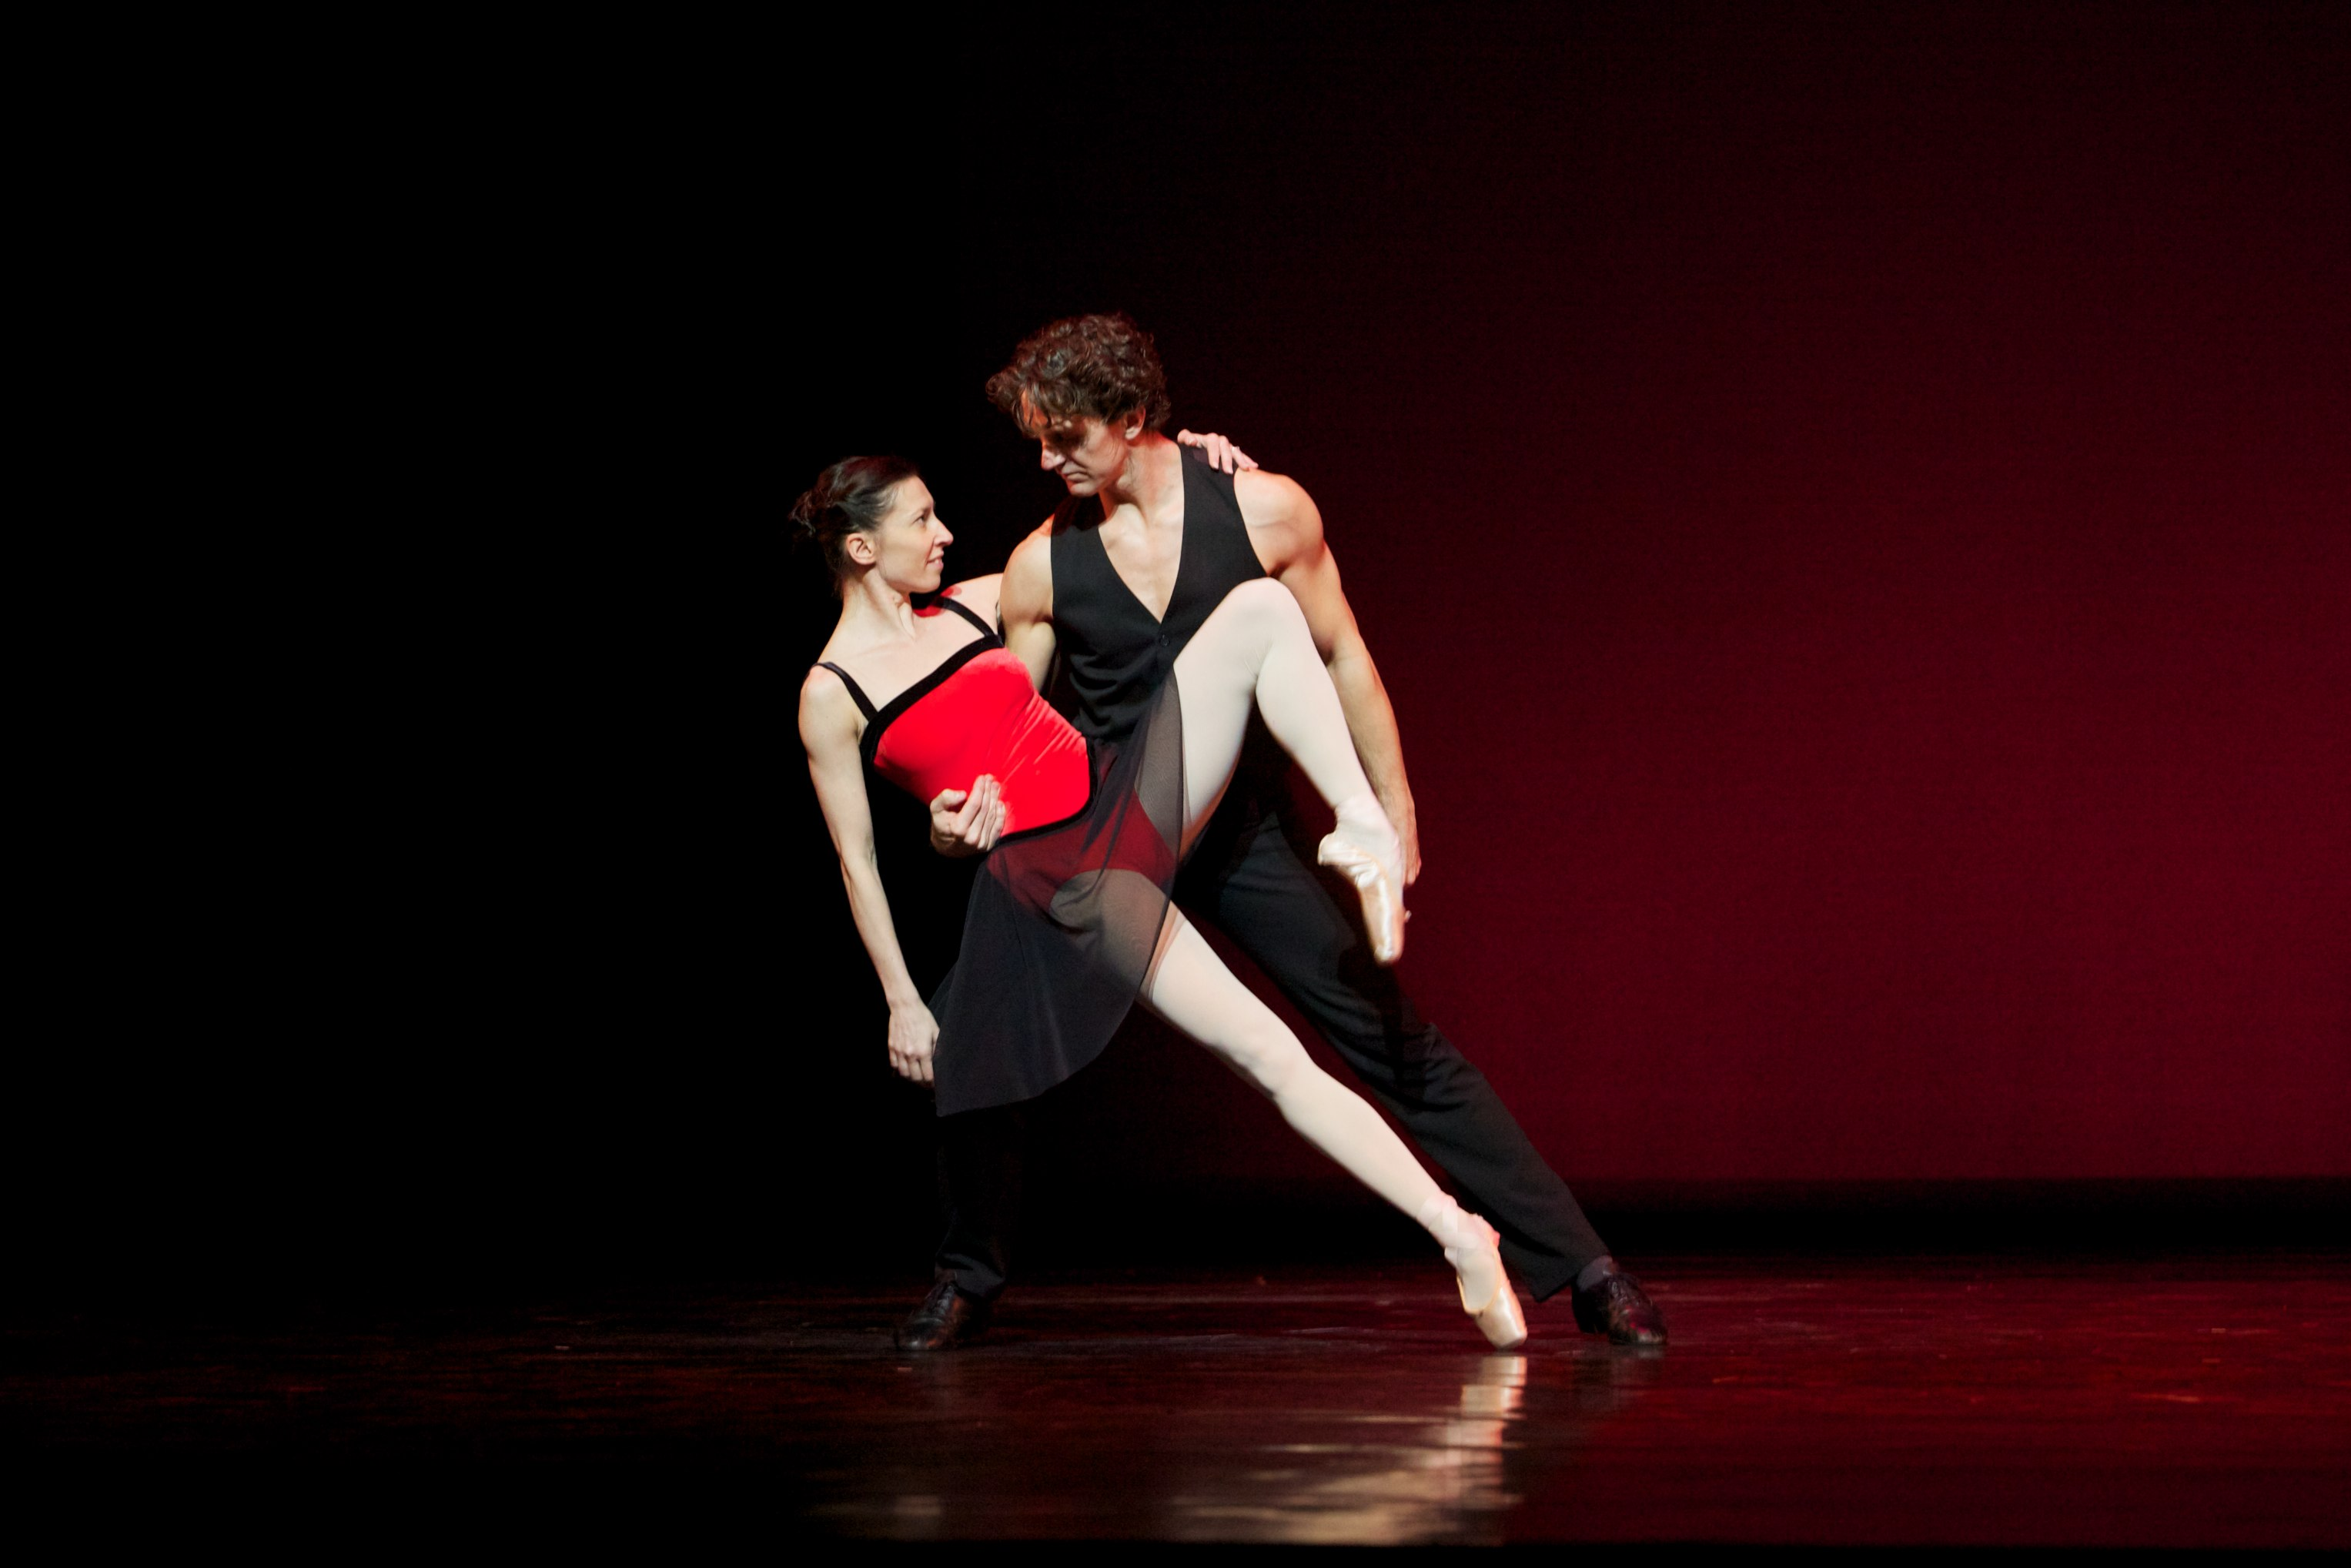 two dancers in a tango on stage